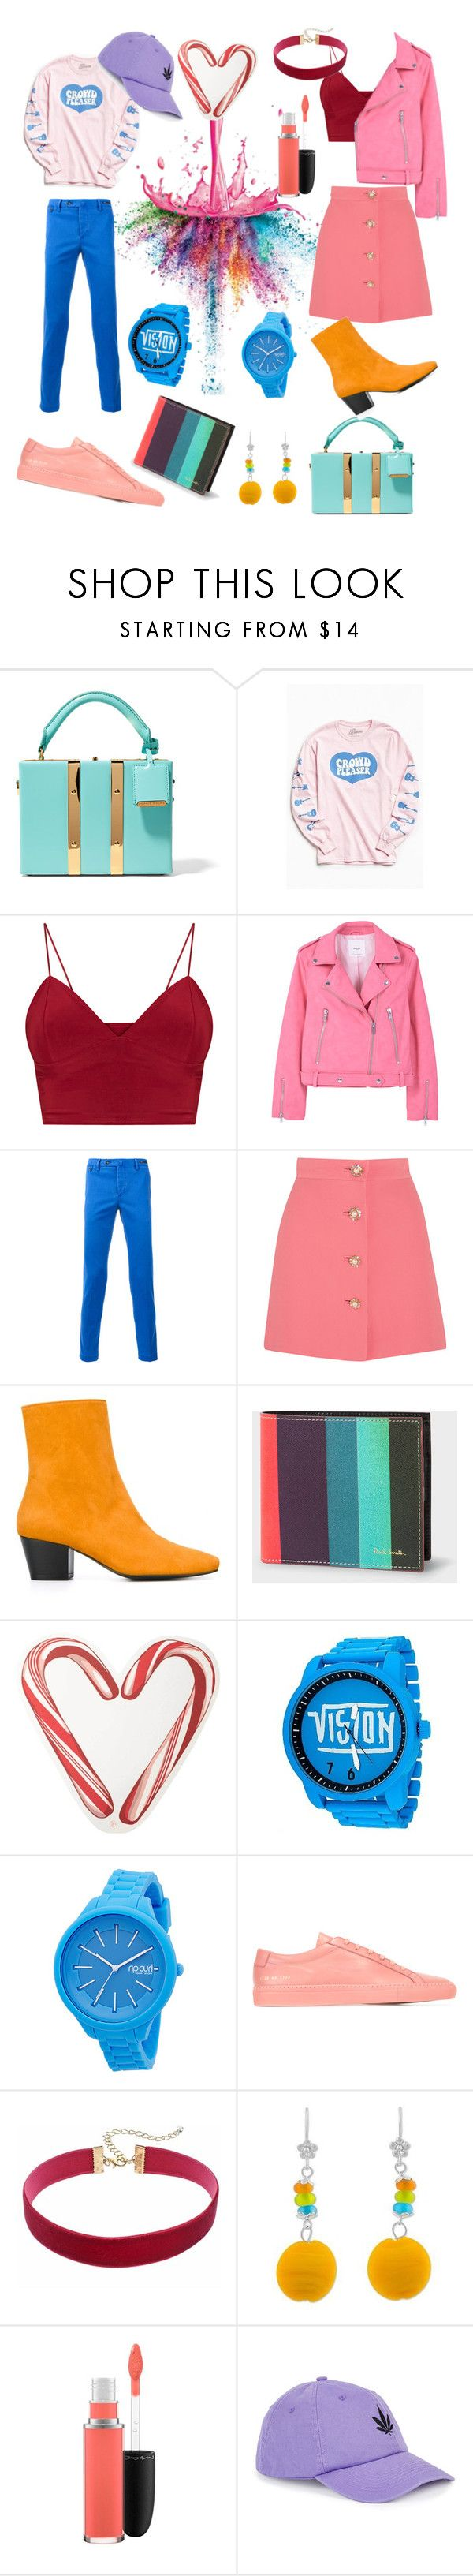 Candy Couple by feliciamia on Polyvore featuring MANGO, Miu Miu, Dorateymur, Sophie Hulme, Rip Curl, NOVICA, Urban Outfitters, PT01 Pantaloni Torino, Paul Smith and Common Projects